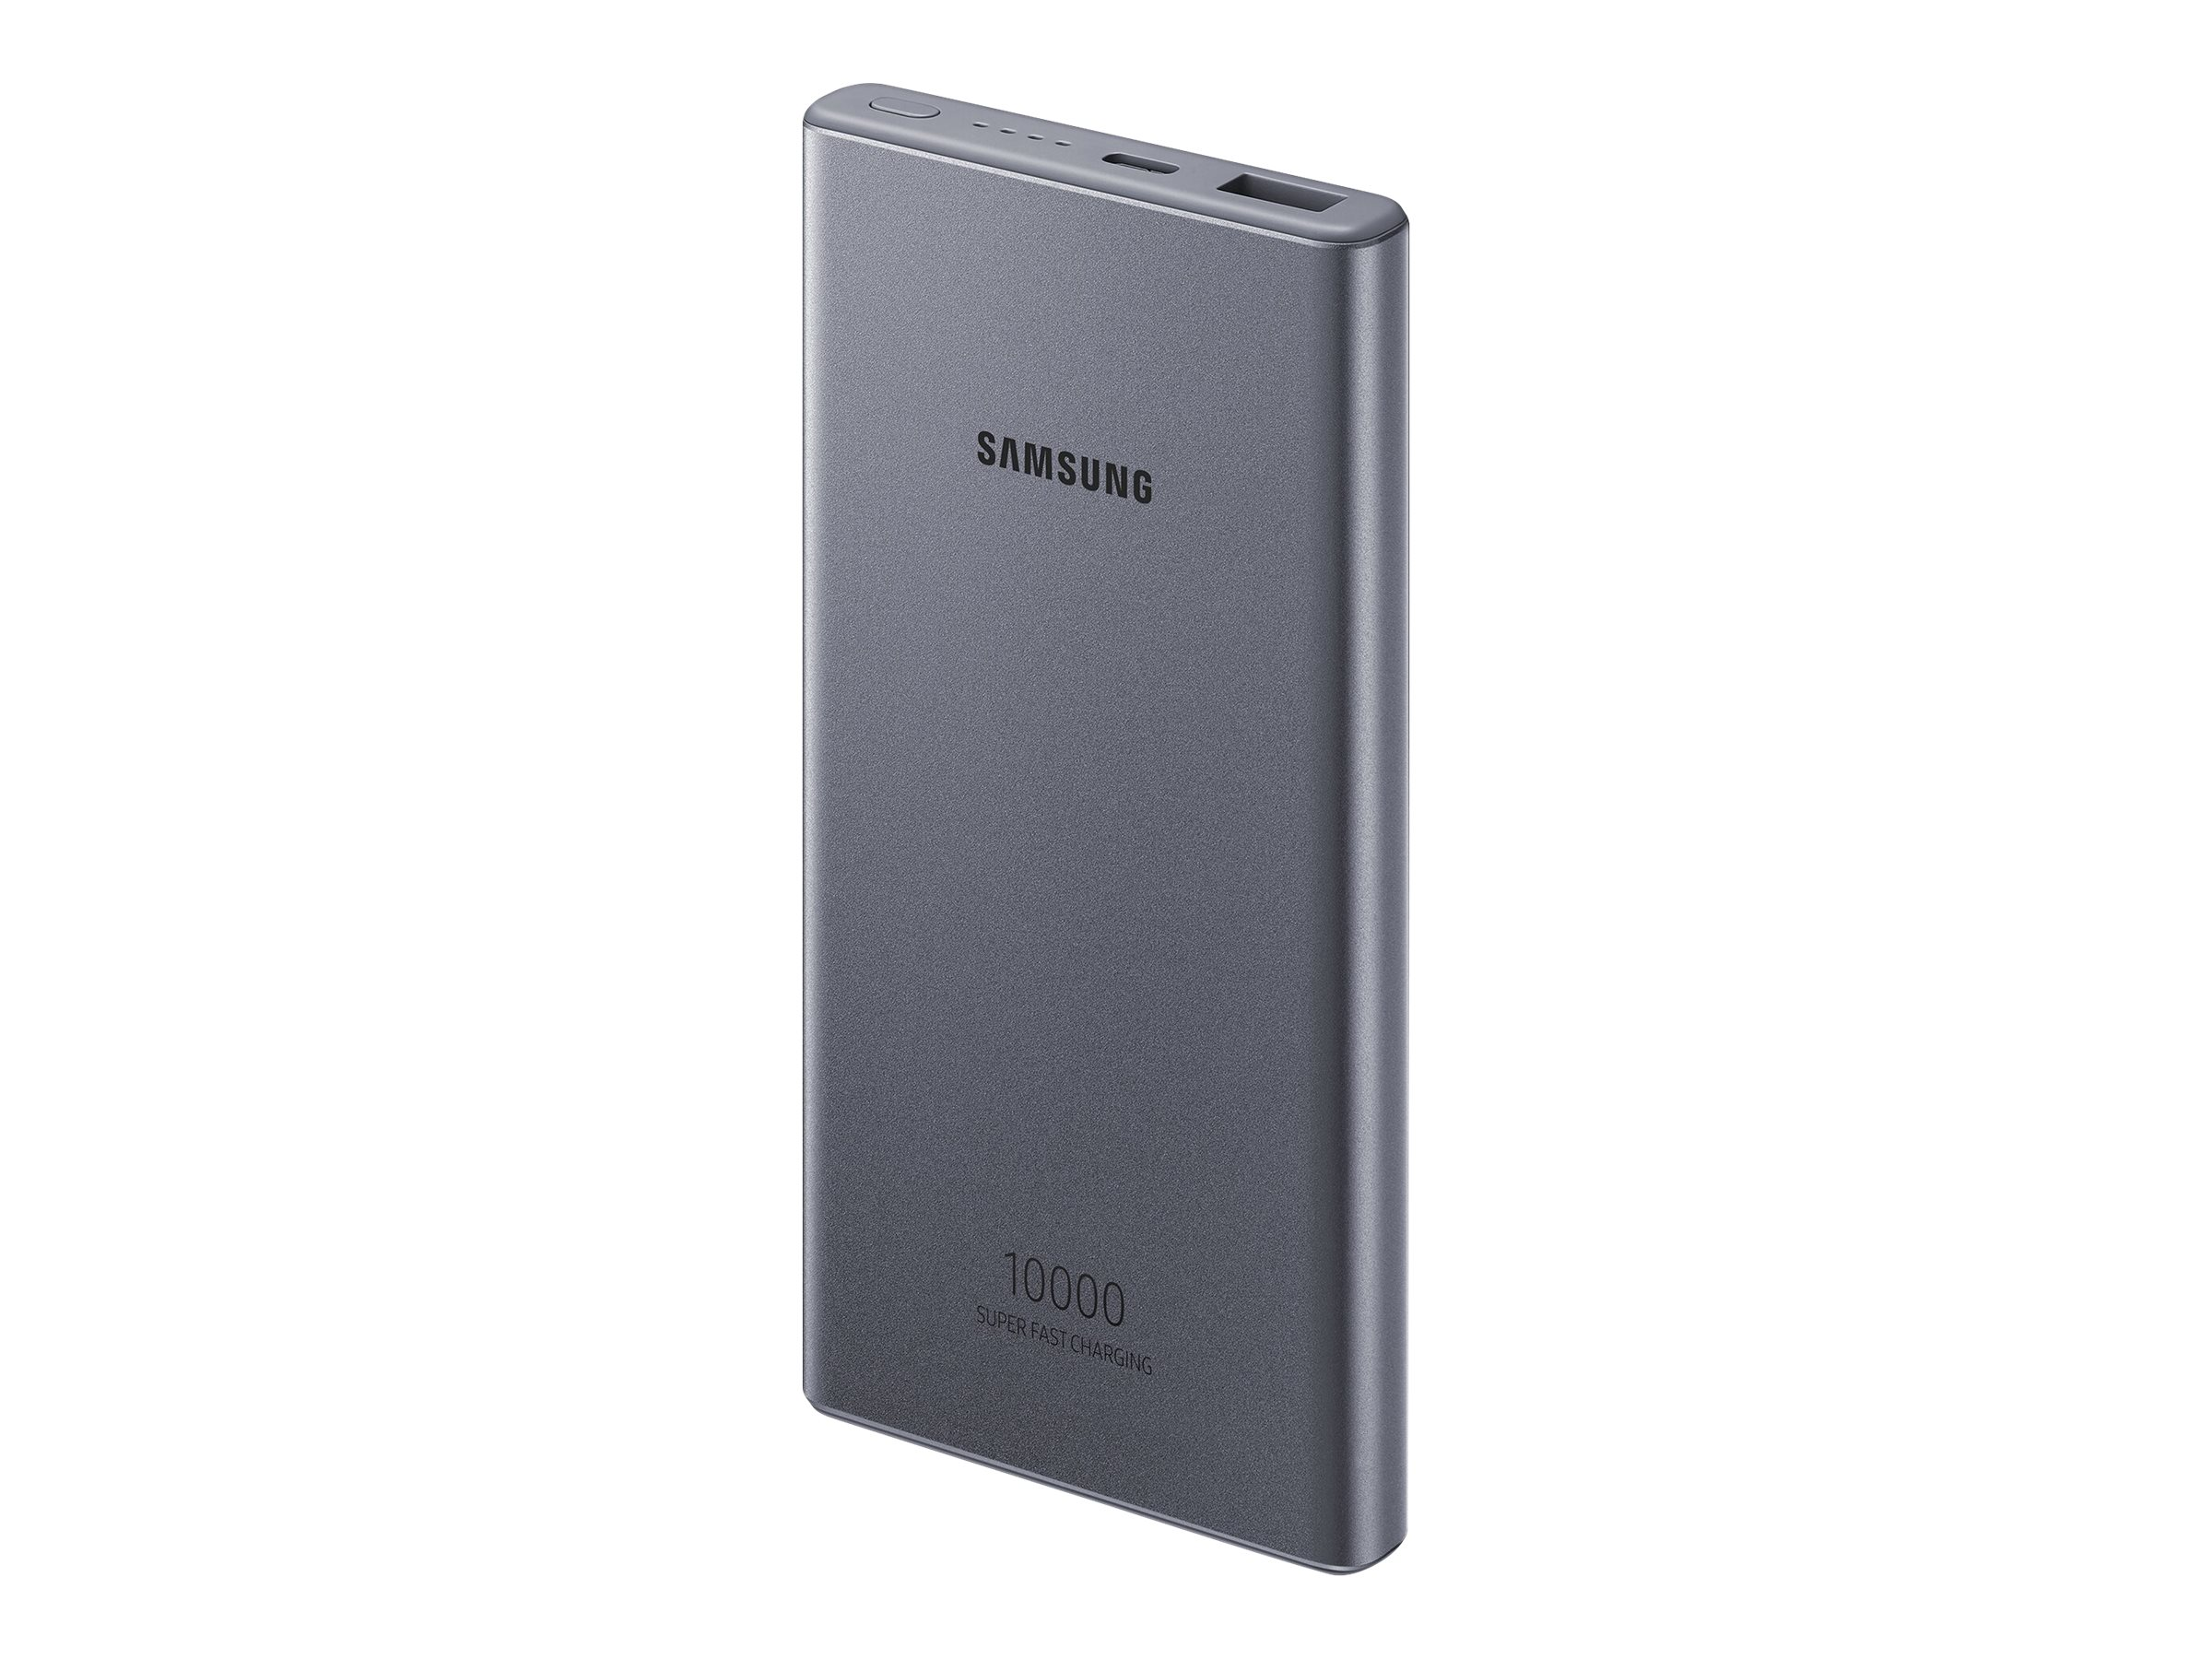 Samsung Portable Battery EB-P3300 power bank - USB, USB-C - 25 Watt